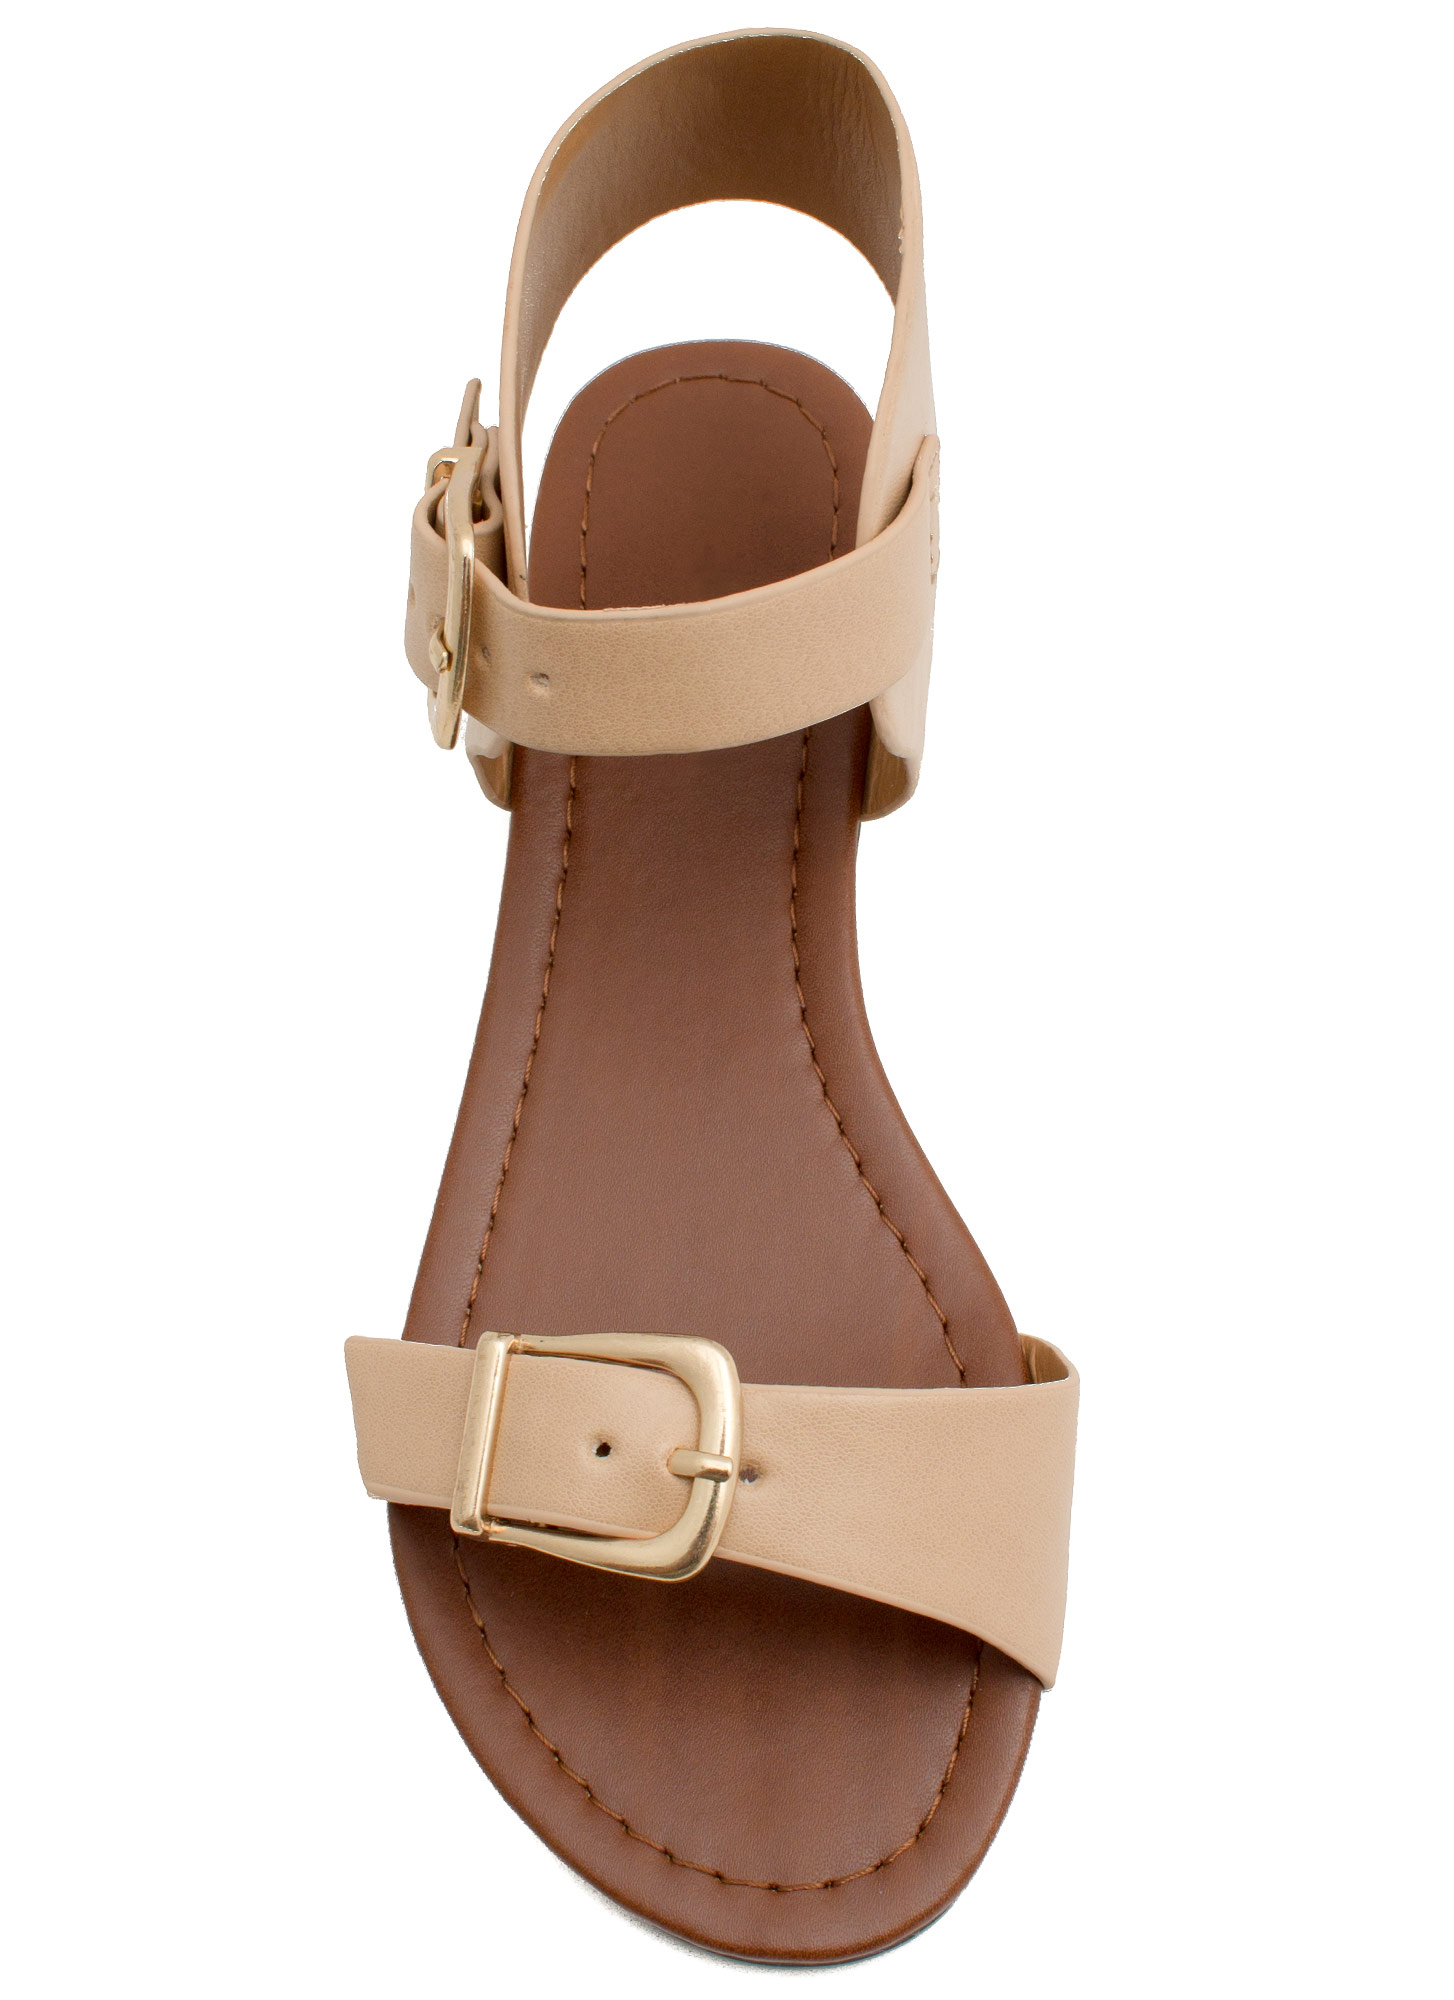 Buckle Stops Here Faux Leather Sandals NATURAL